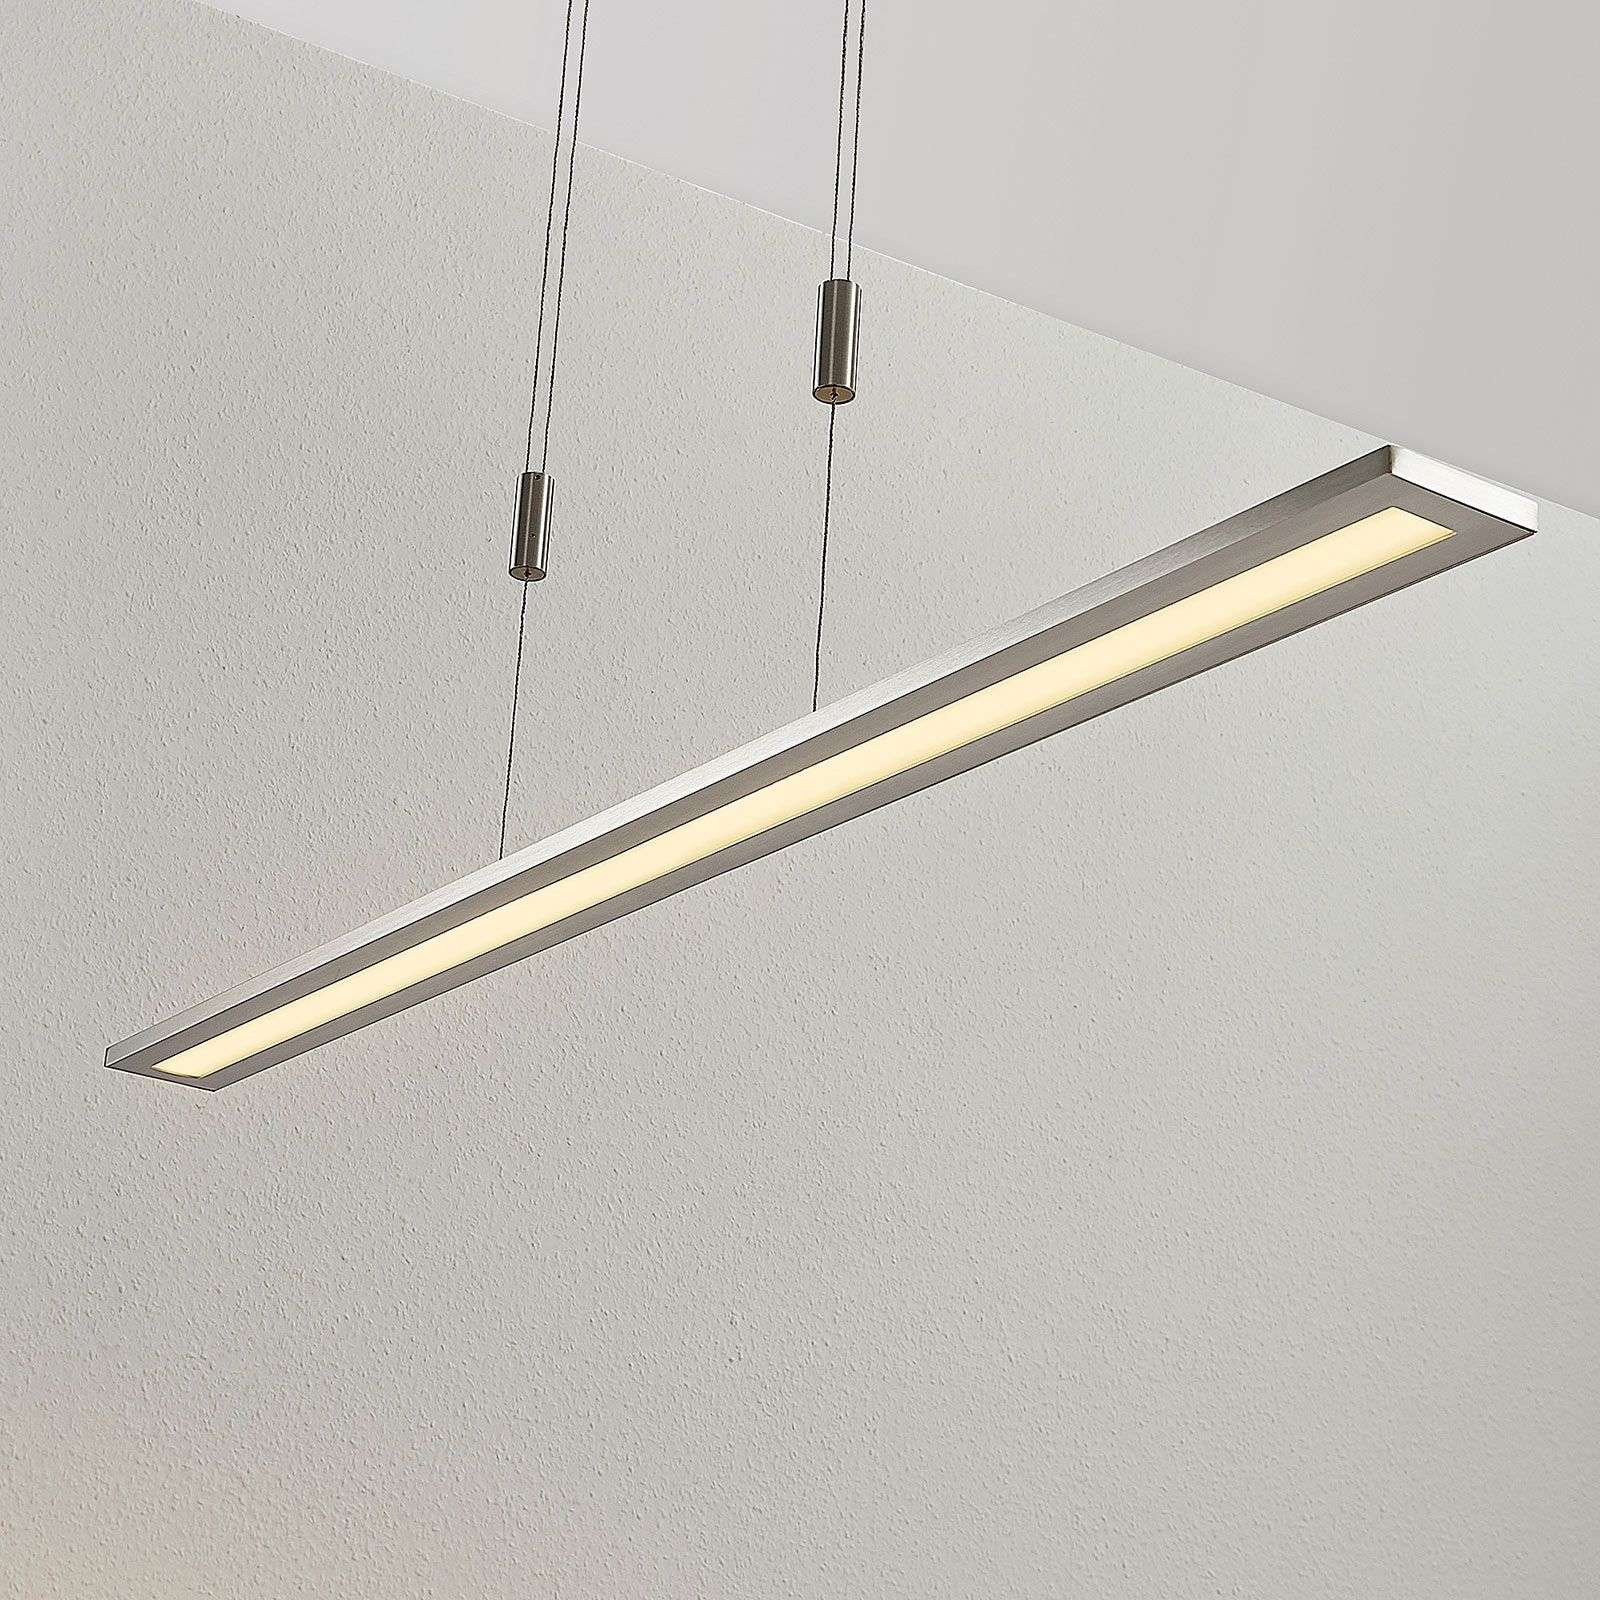 Suspension LED Esteban en nickel, dimmable